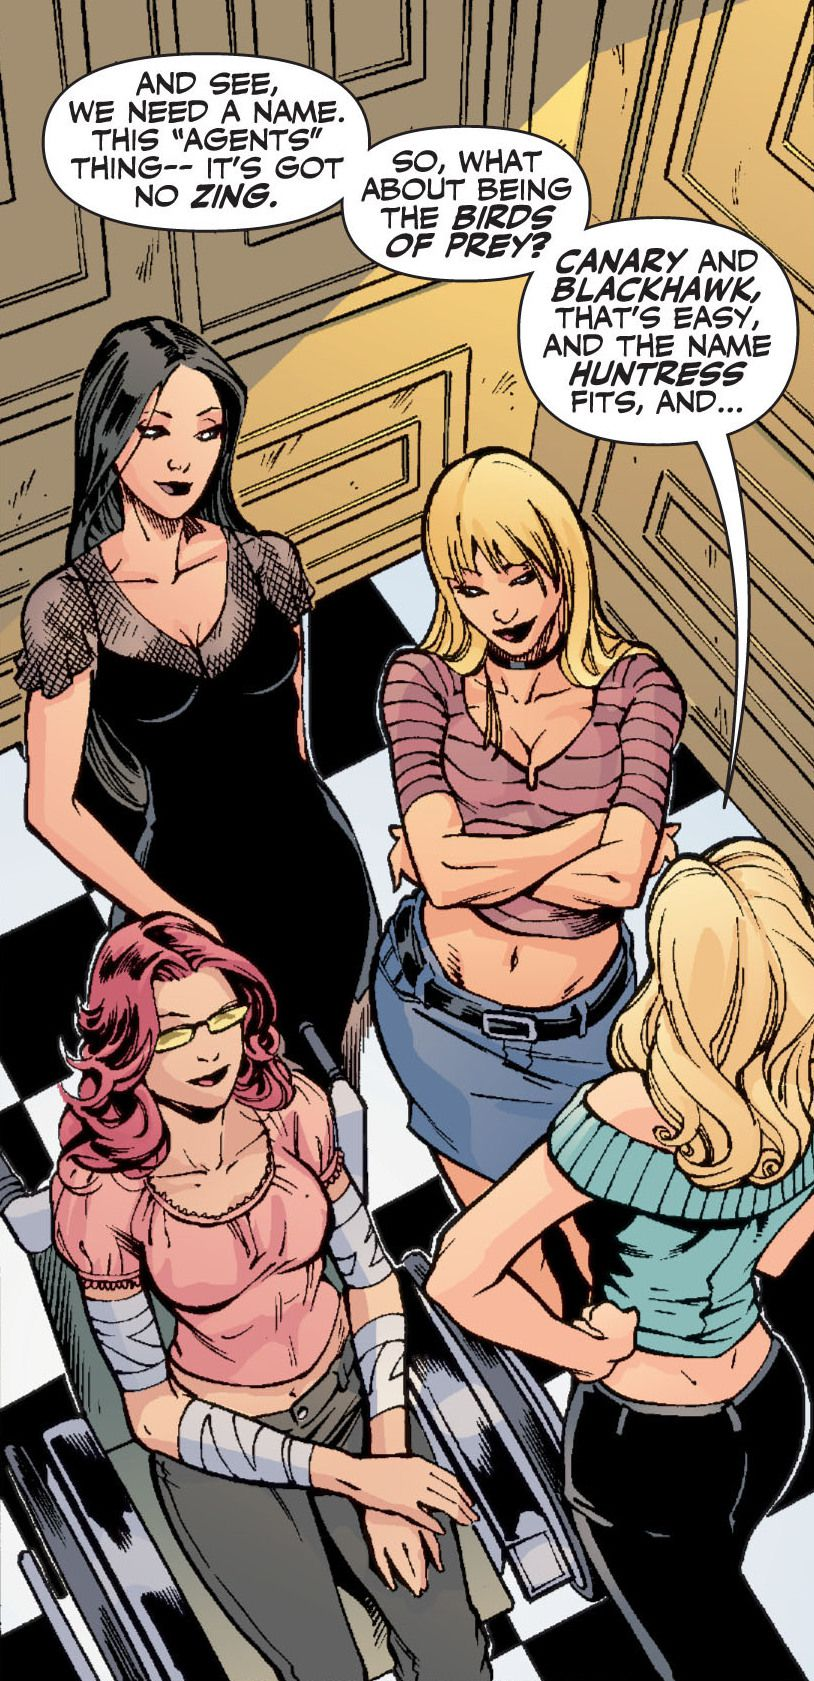 Birds of Prey #86, DC Comics (2005).